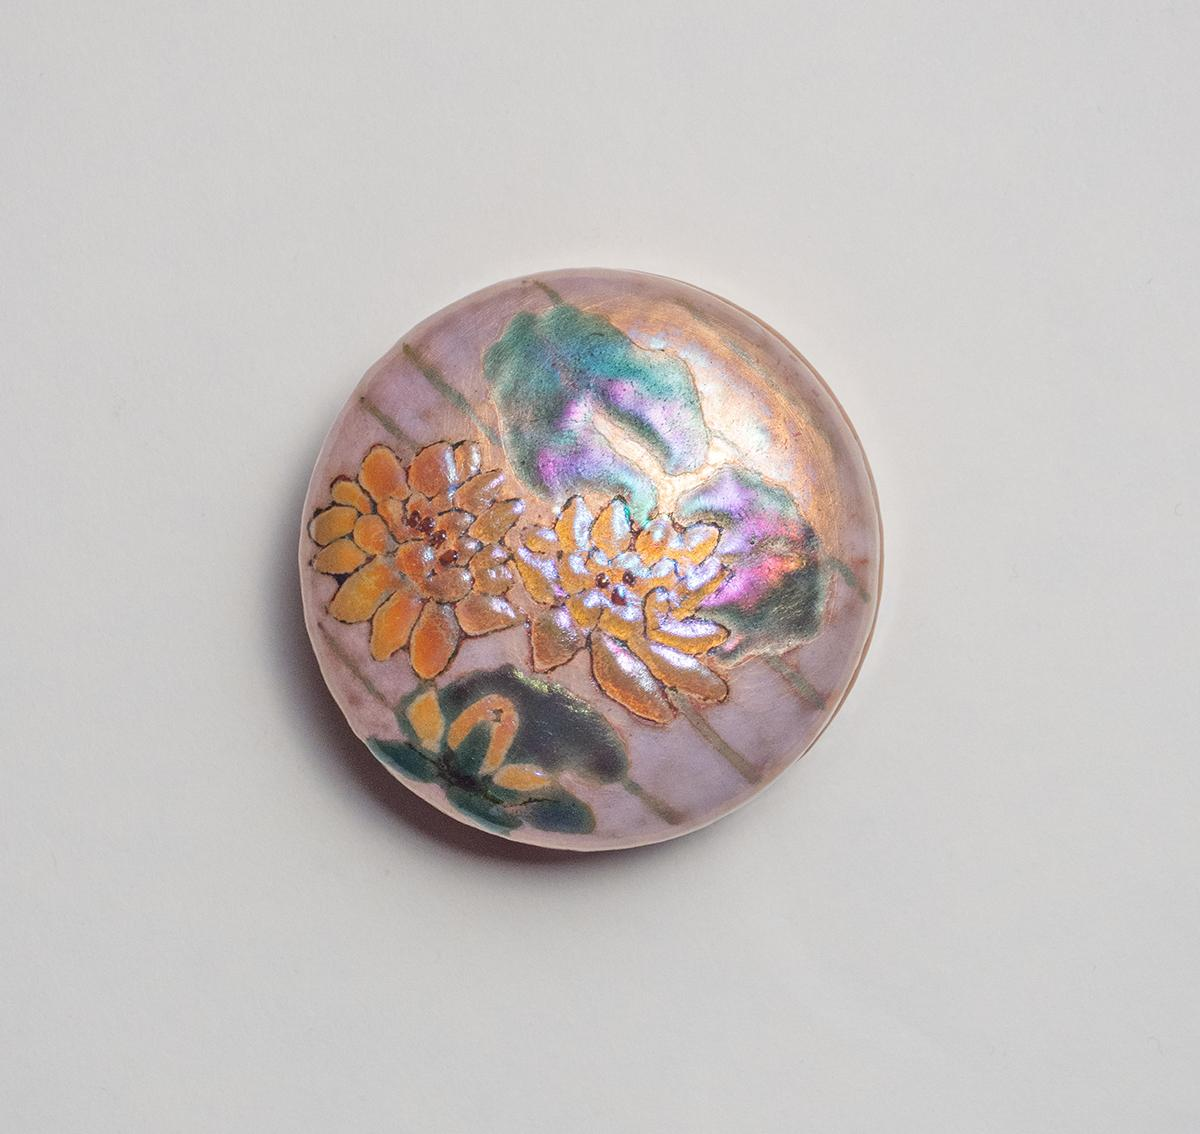 Enameled Lidded Box with Water Lilies 2